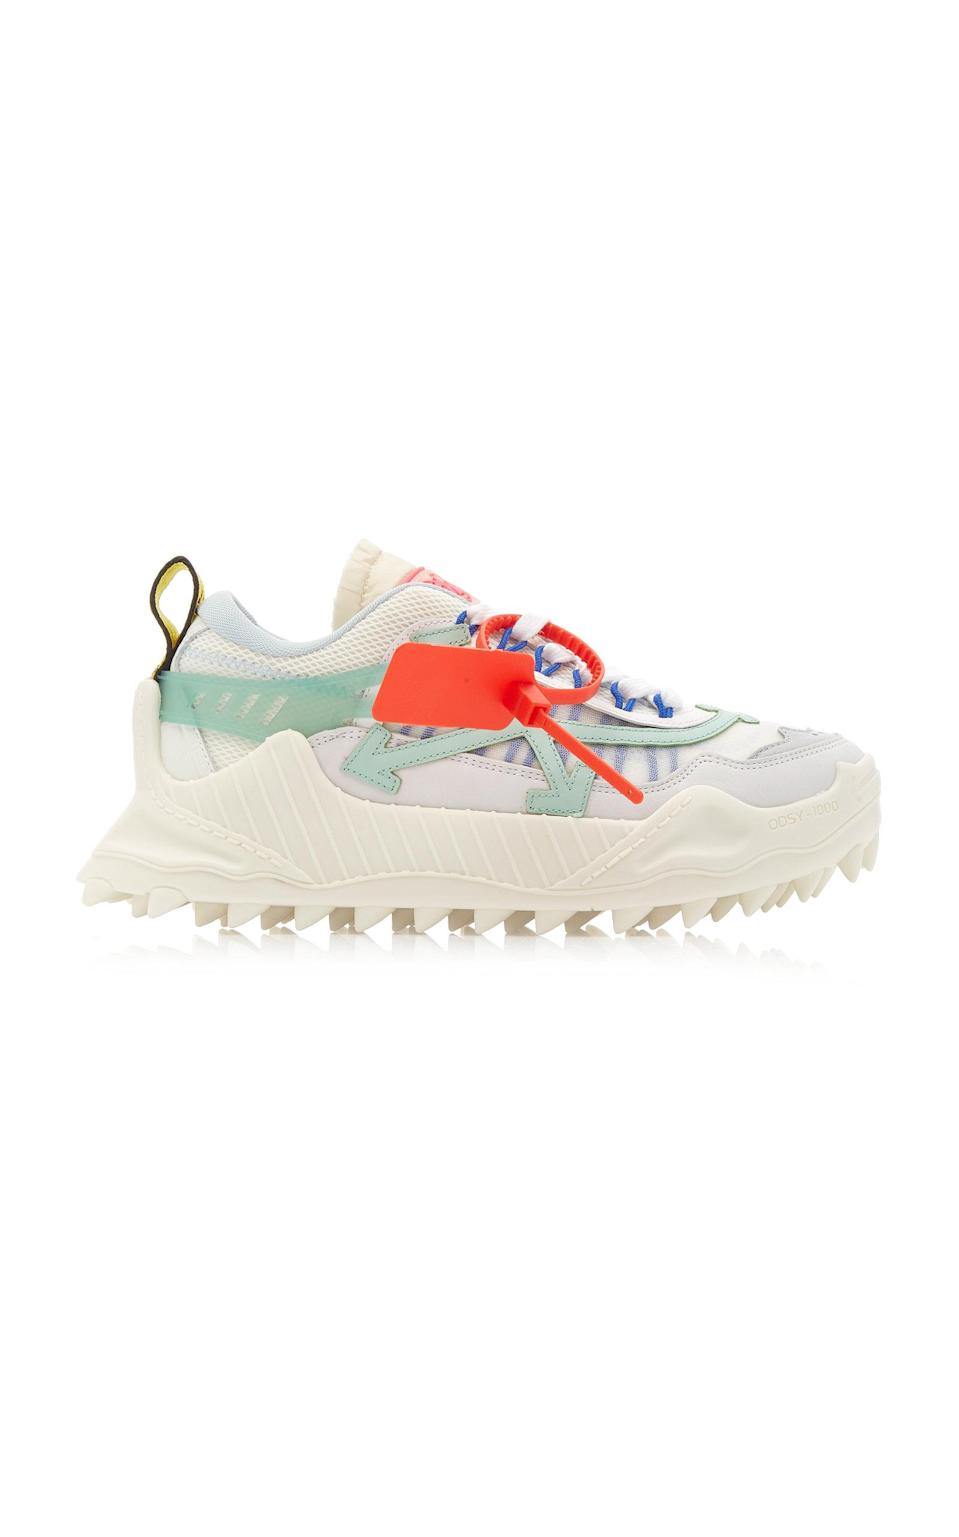 """<p><strong>Off-White c/o Virgil Abloh</strong></p><p>modaoperandi.com</p><p><strong>$590.00</strong></p><p><a href=""""https://go.redirectingat.com?id=74968X1596630&url=https%3A%2F%2Fwww.modaoperandi.com%2Foff-white-r20%2Fodsy-1000-low-top-suede-and-mesh-sneakers&sref=https%3A%2F%2Fwww.harpersbazaar.com%2Ffashion%2Ftrends%2Fg31749966%2Fsummer-2020-shoe-trends%2F"""" rel=""""nofollow noopener"""" target=""""_blank"""" data-ylk=""""slk:Shop Now"""" class=""""link rapid-noclick-resp"""">Shop Now</a></p><p>Prove your streetwear prowess with a pair from Off-White.</p>"""